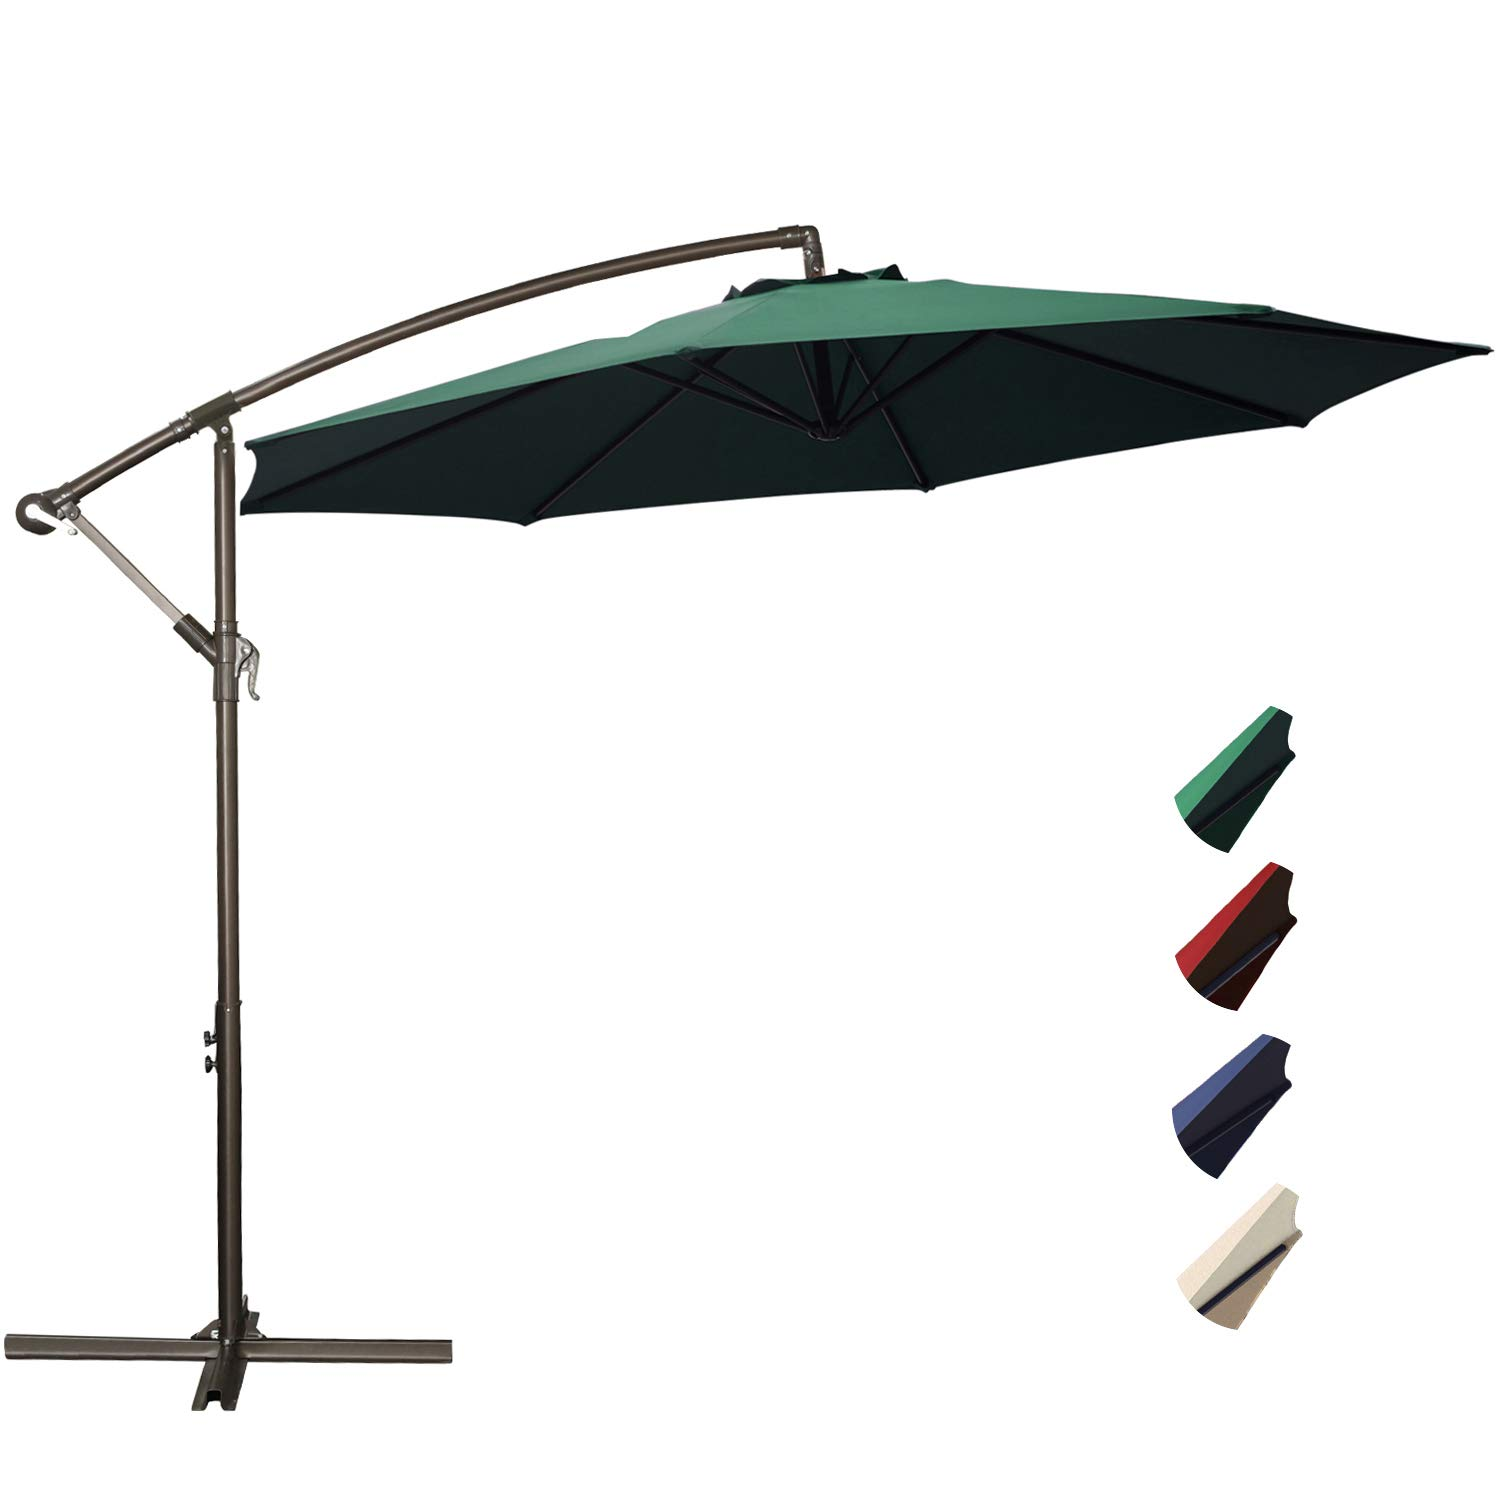 RUBEDER Offset Umbrella - 10Ft Cantilever Patio Hanging Umbrella,Outdoor Market Umbrellas with Crank Lift & Cross Base (10 Ft, Dark Green) by RUBEDER (Image #1)